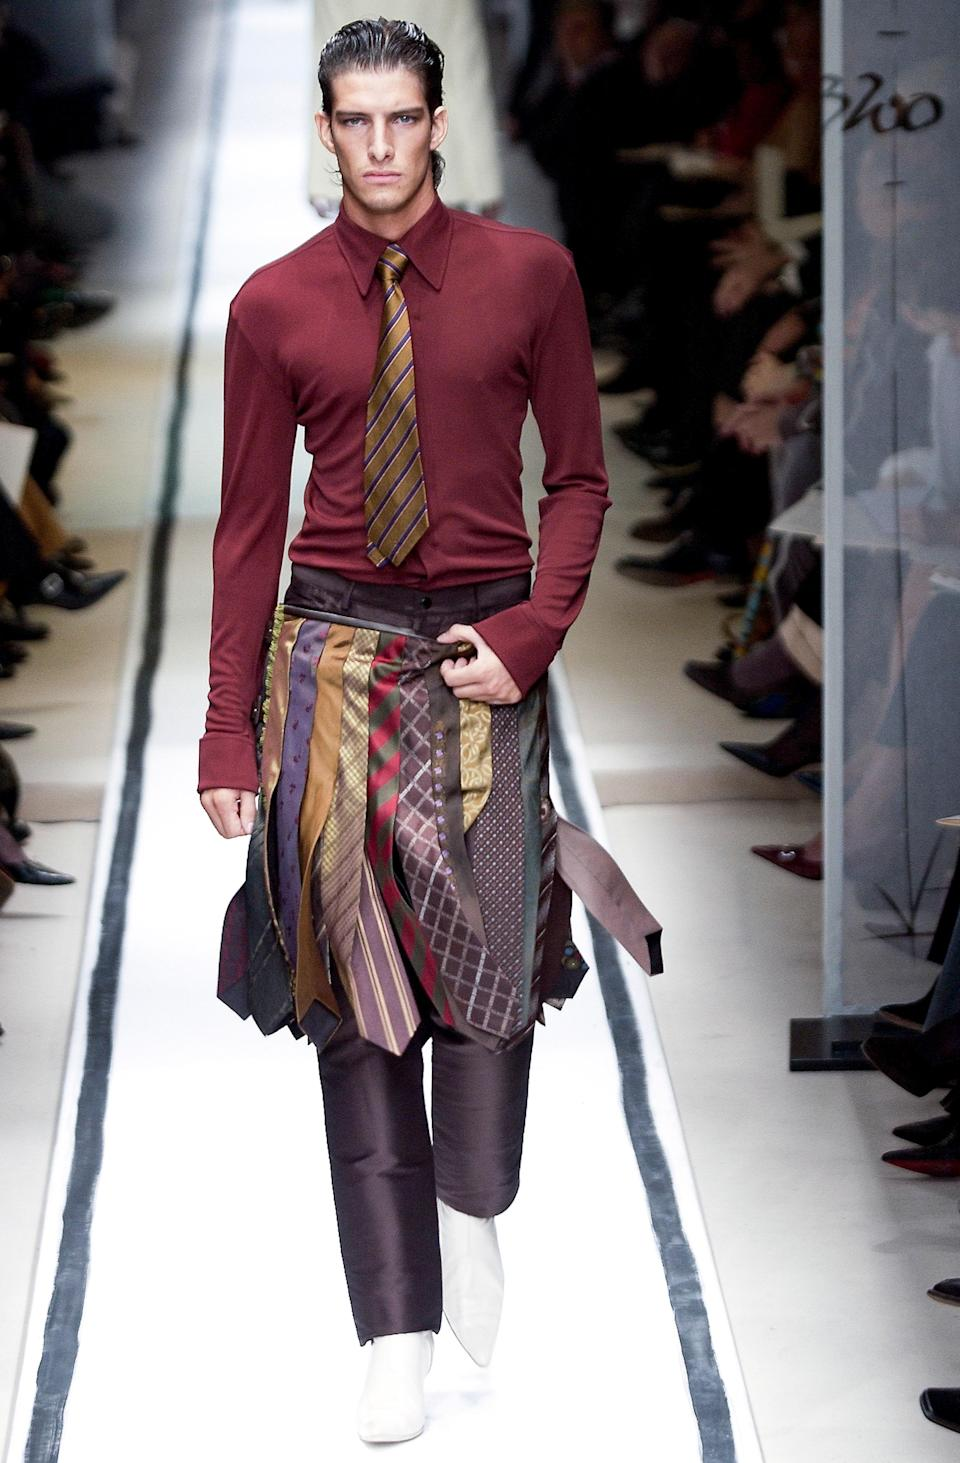 A cool idea from Jean-Paul Gaultier for what to do with all those ties.